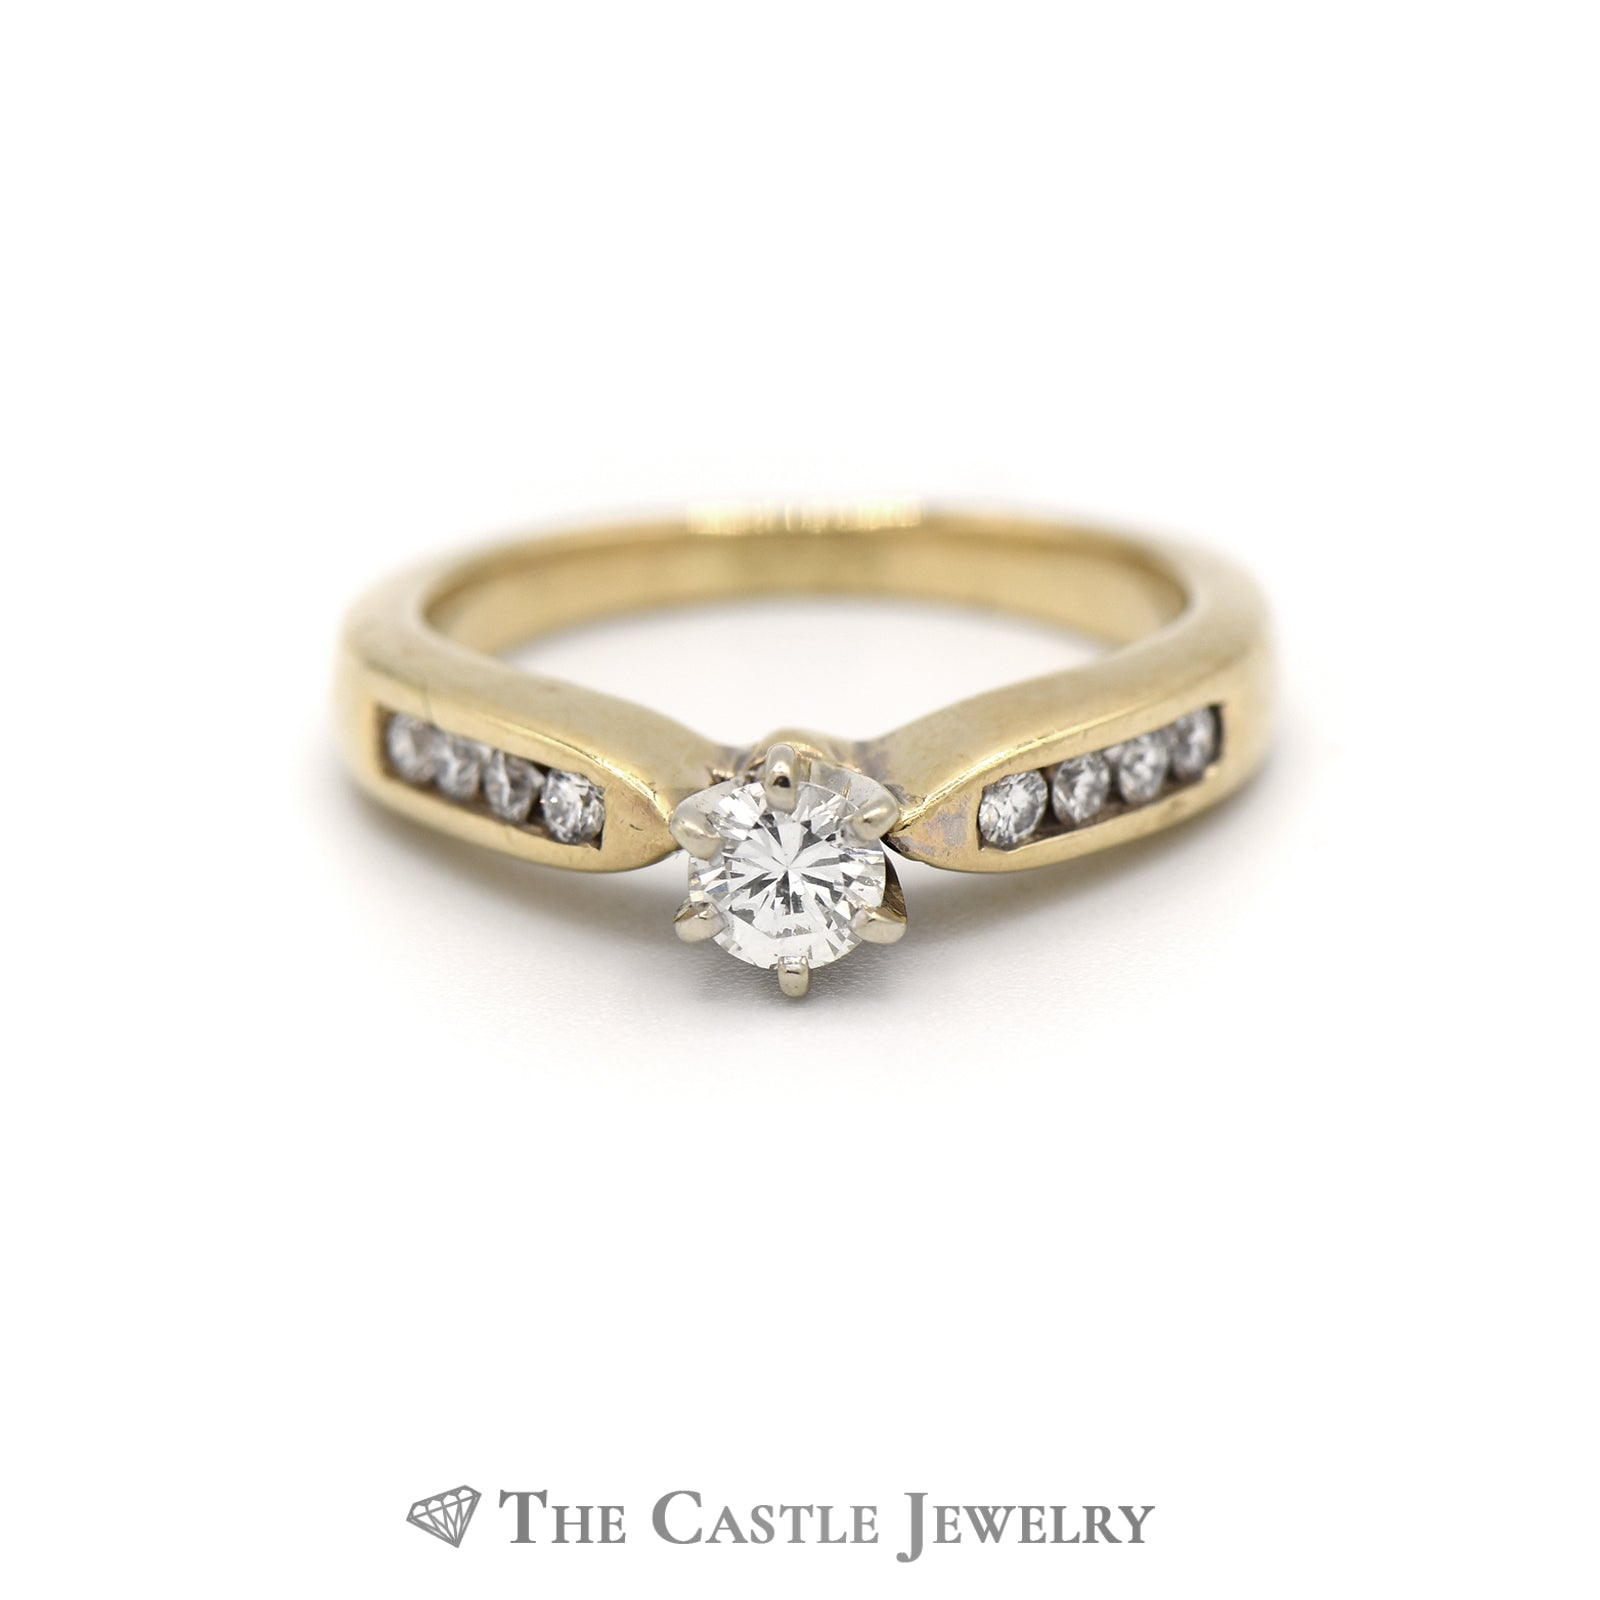 Round Brilliant Cut Diamond Engagement Ring with Channel Set Round Diamond Sides